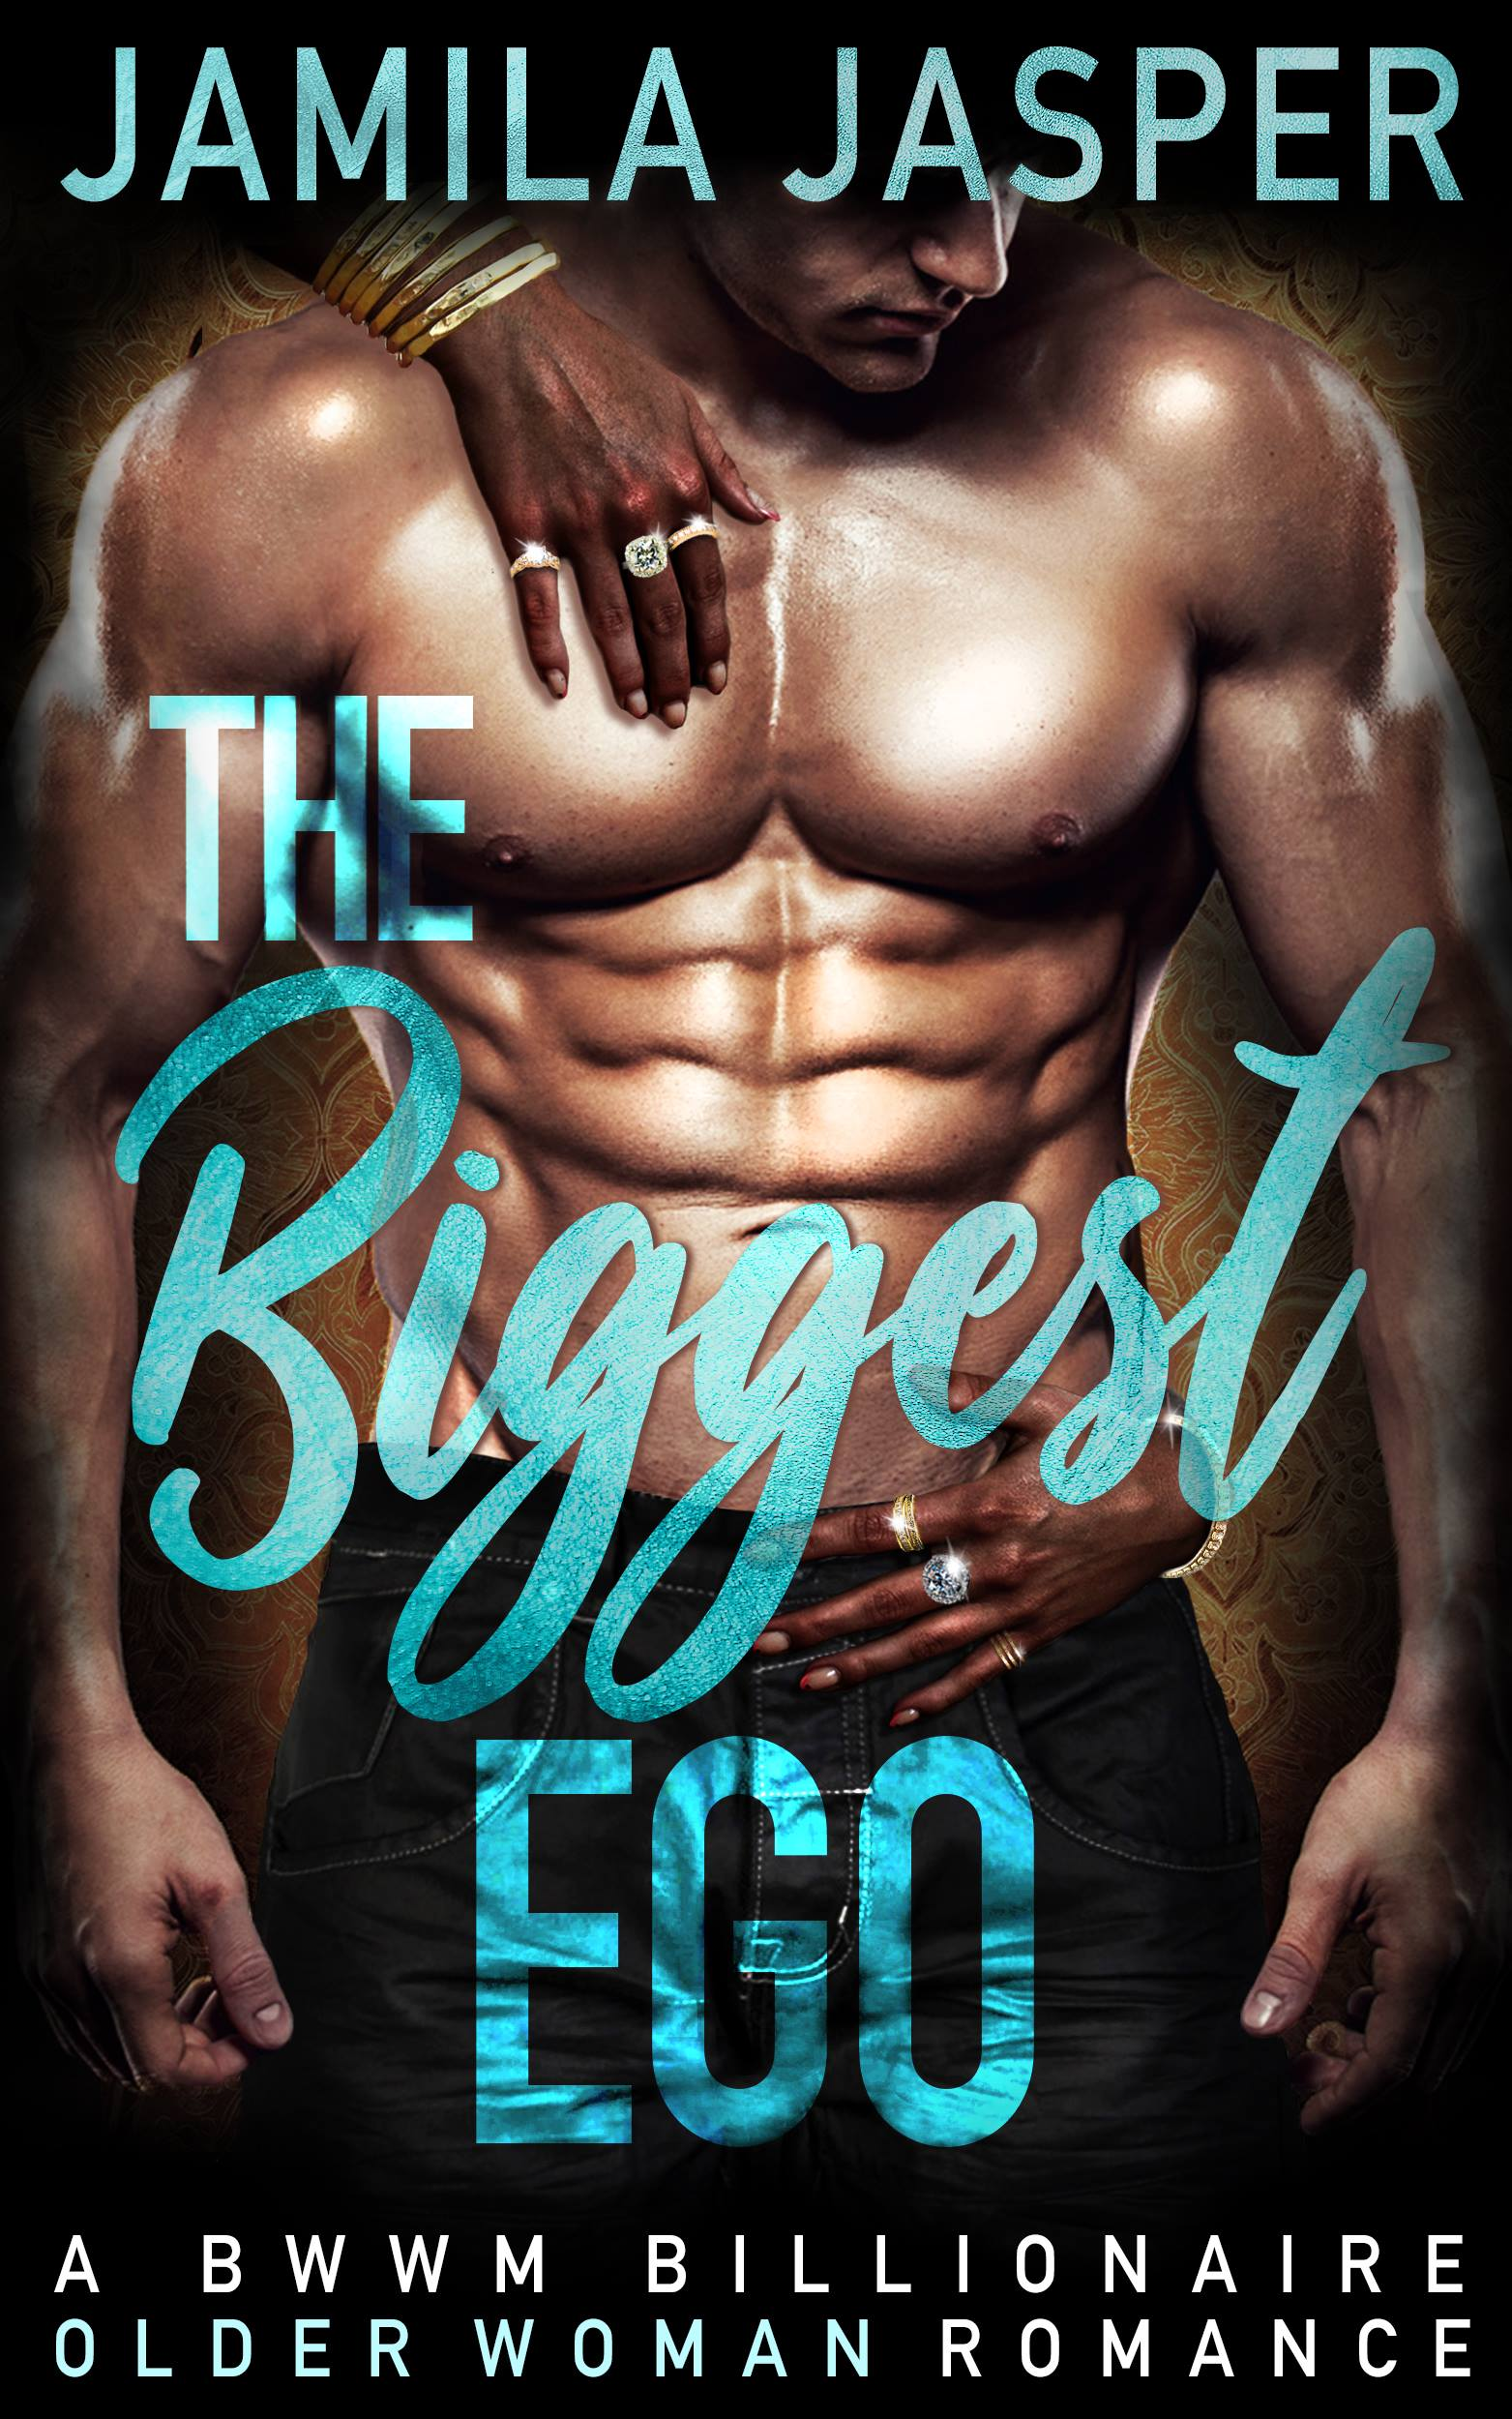 the biggest ego older woman interracial romance wmbw romance novels and bwwm interracial novellas